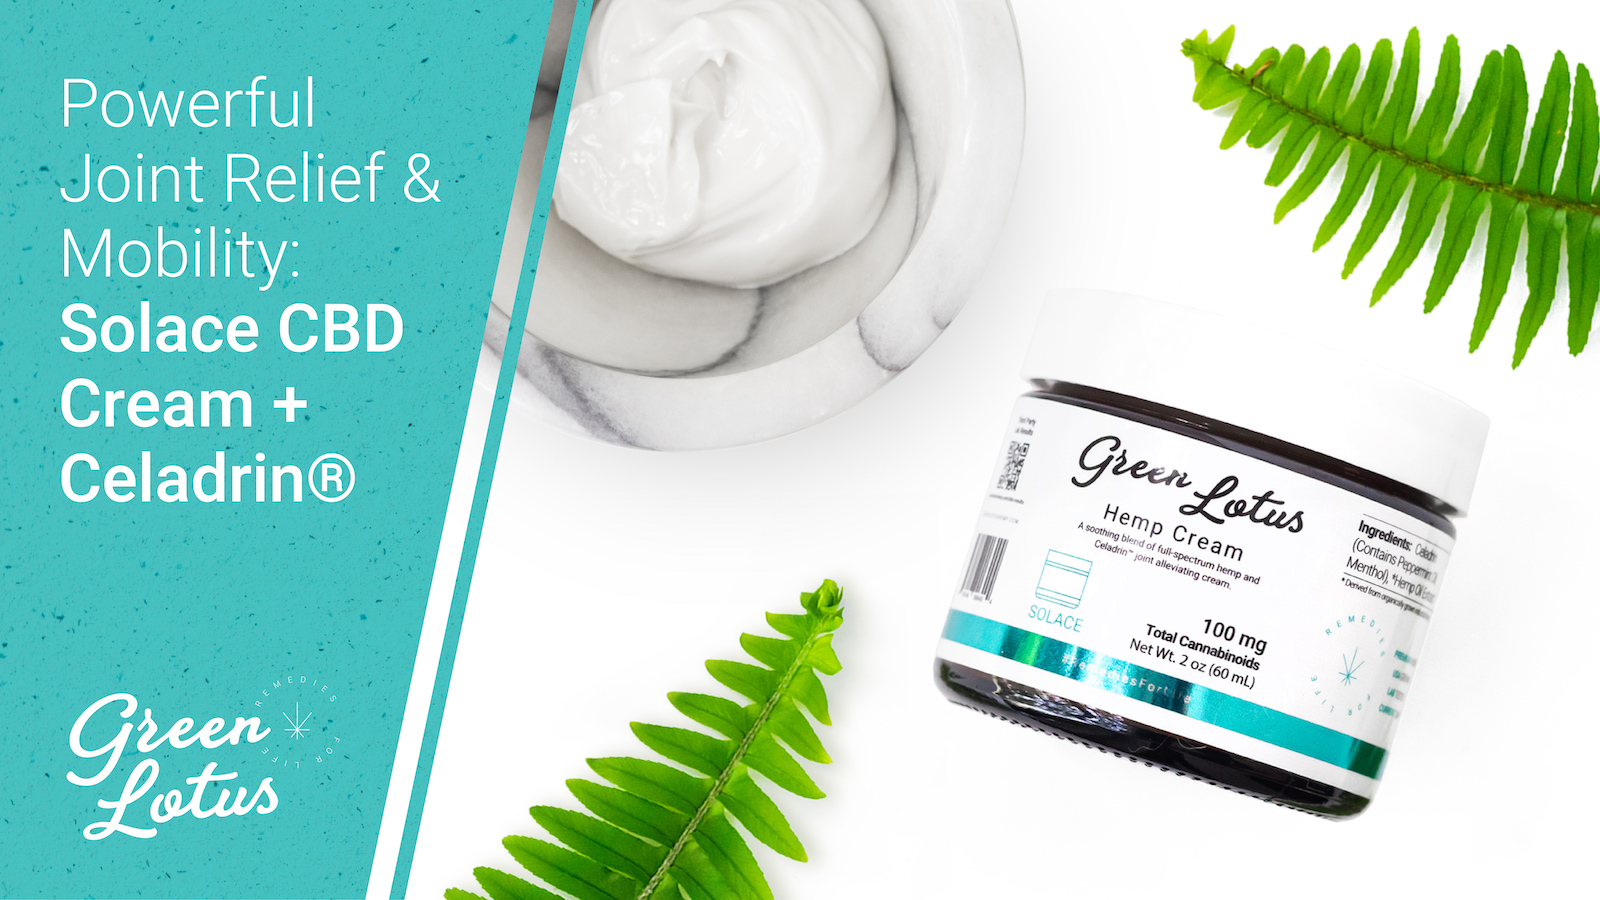 Powerful Joint Relief & Mobility: Solace CBD Cream + Celadrin®